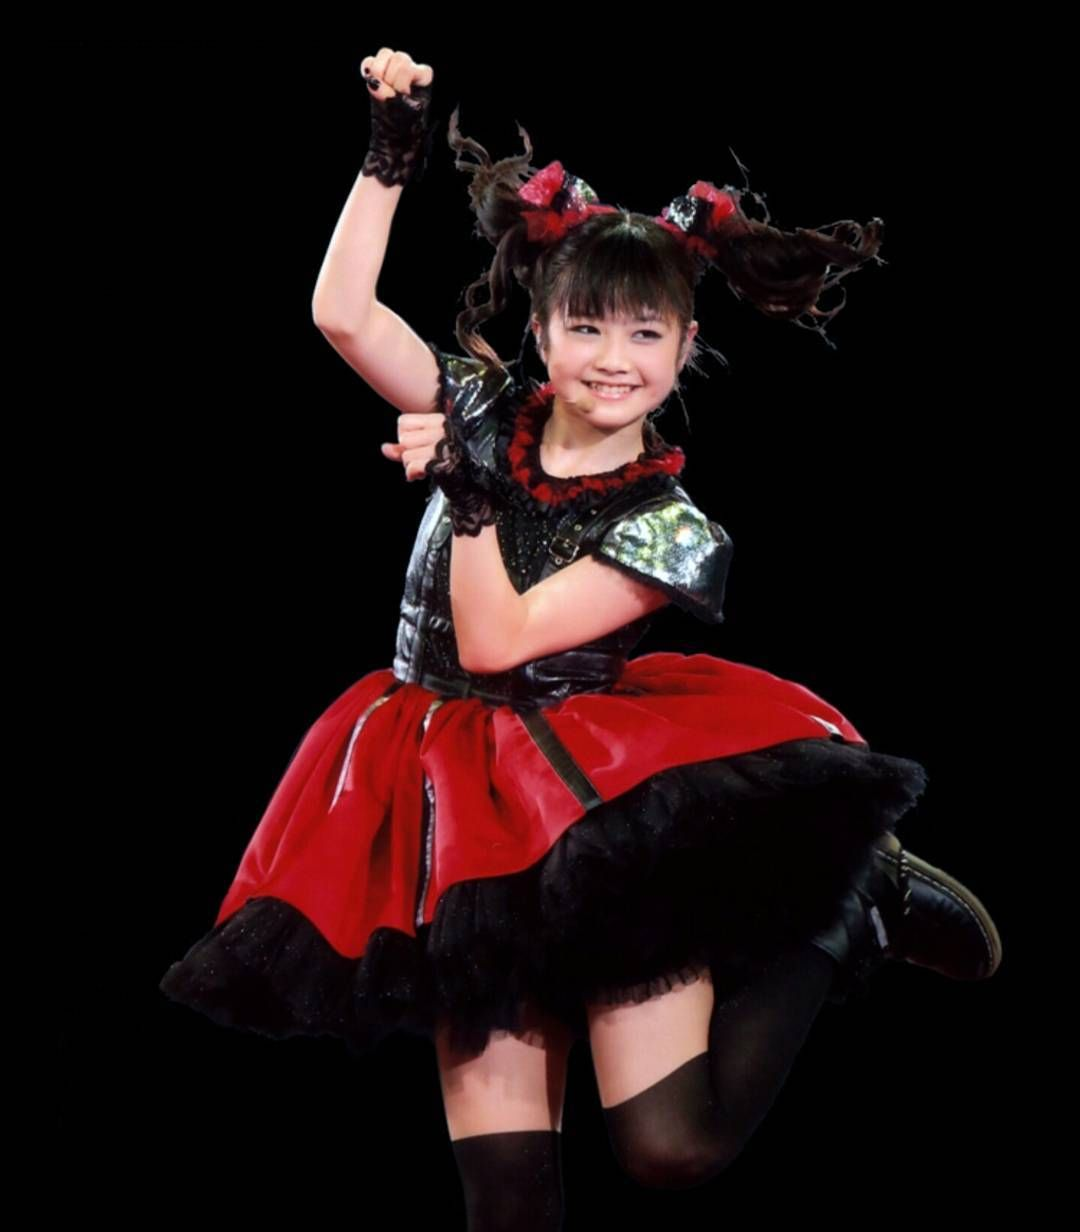 We Are The One Babymetal On Instagram Last Is A Beauty From Yui Yuimetal Mizunoyui Yuimizuno